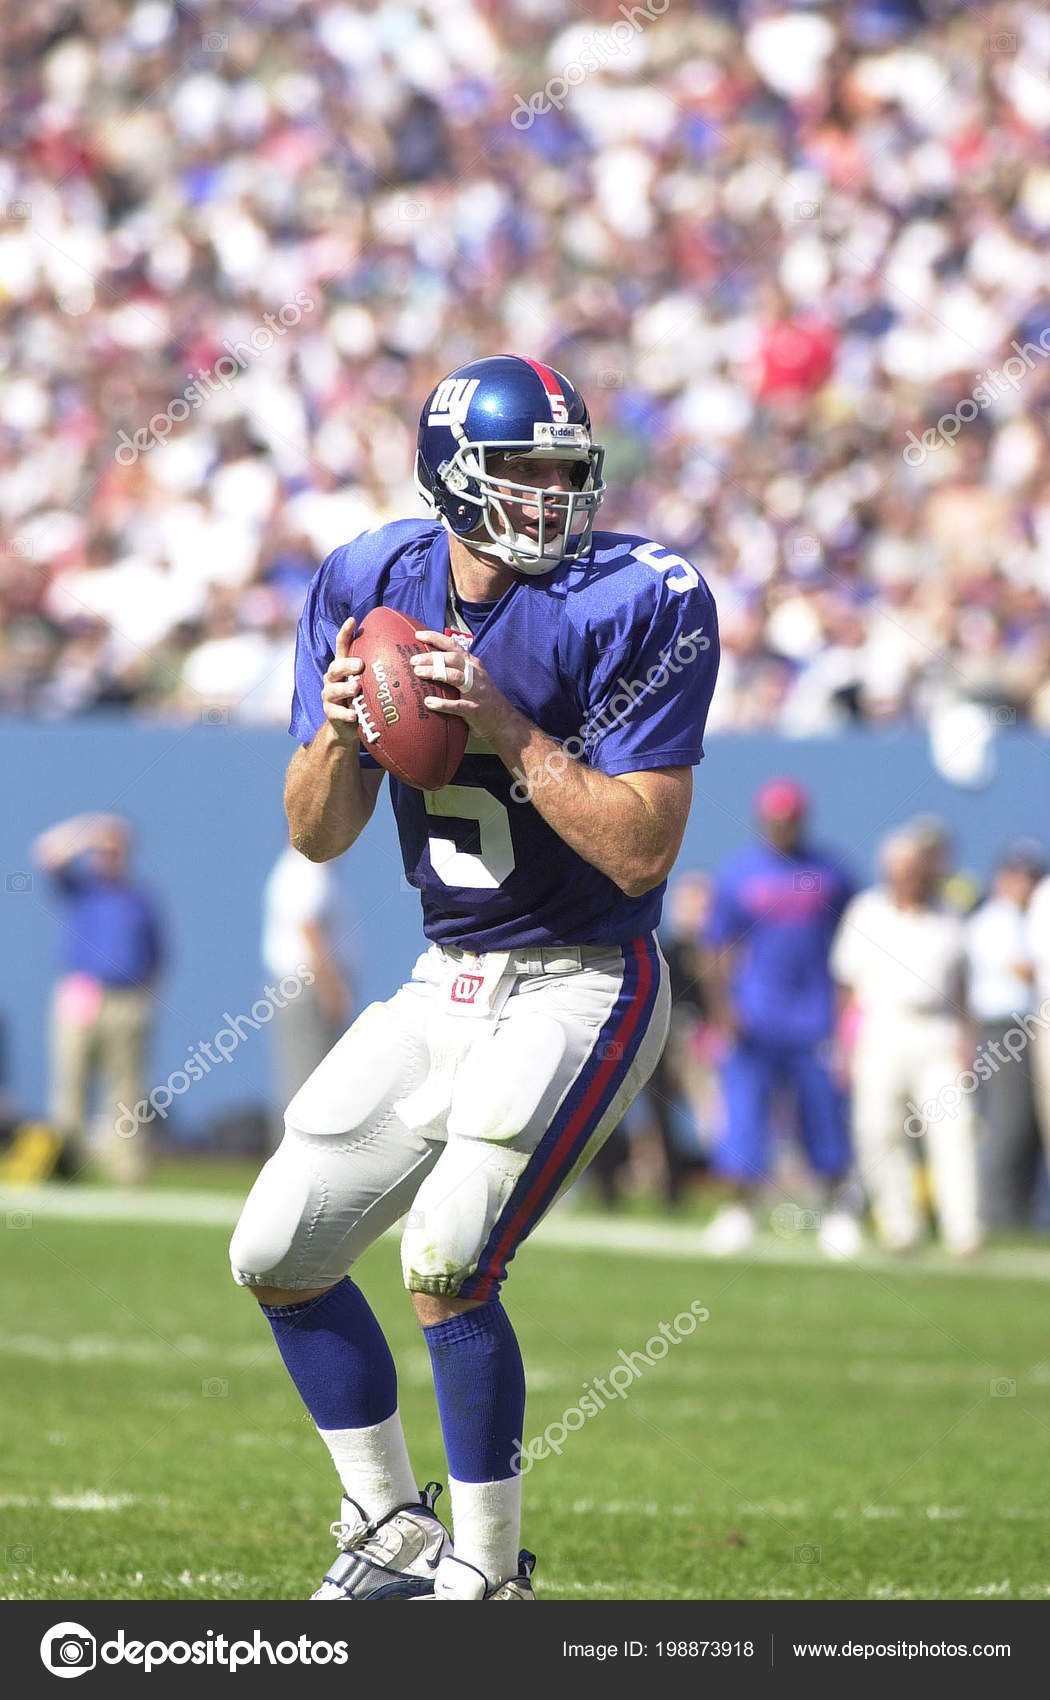 d706904ea3c Kerry Collins Quarterback New York Giants Game Action Regular Season — Stock  Photo